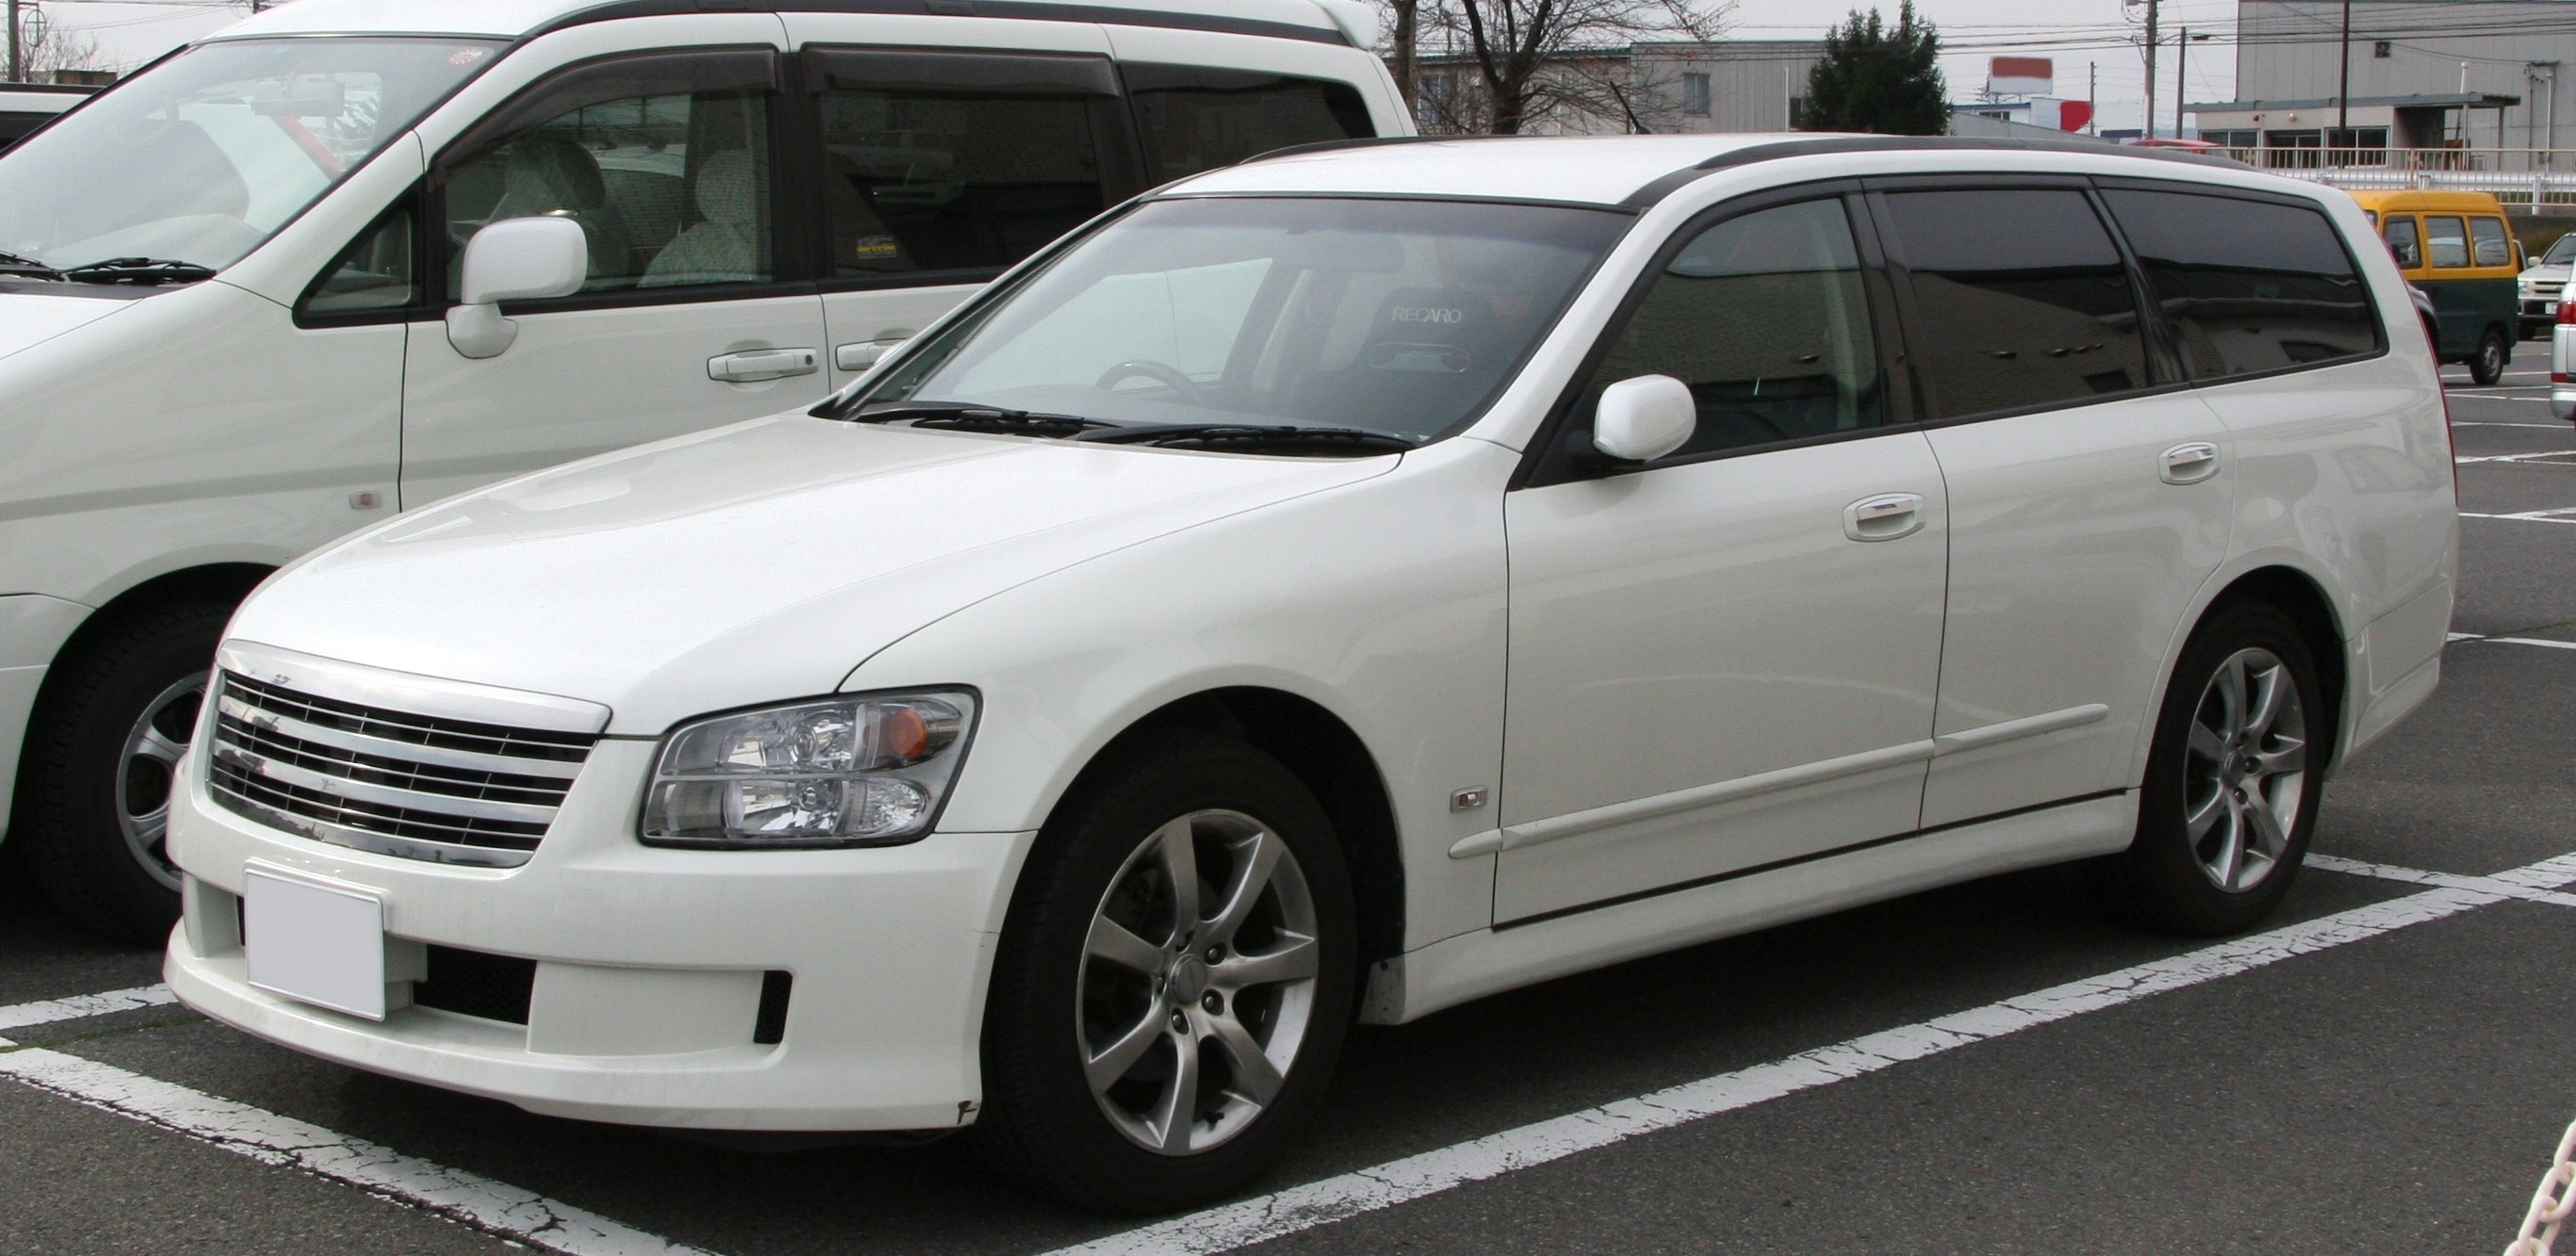 File Nissan Stagea Axis S Jpg Wikimedia Commons